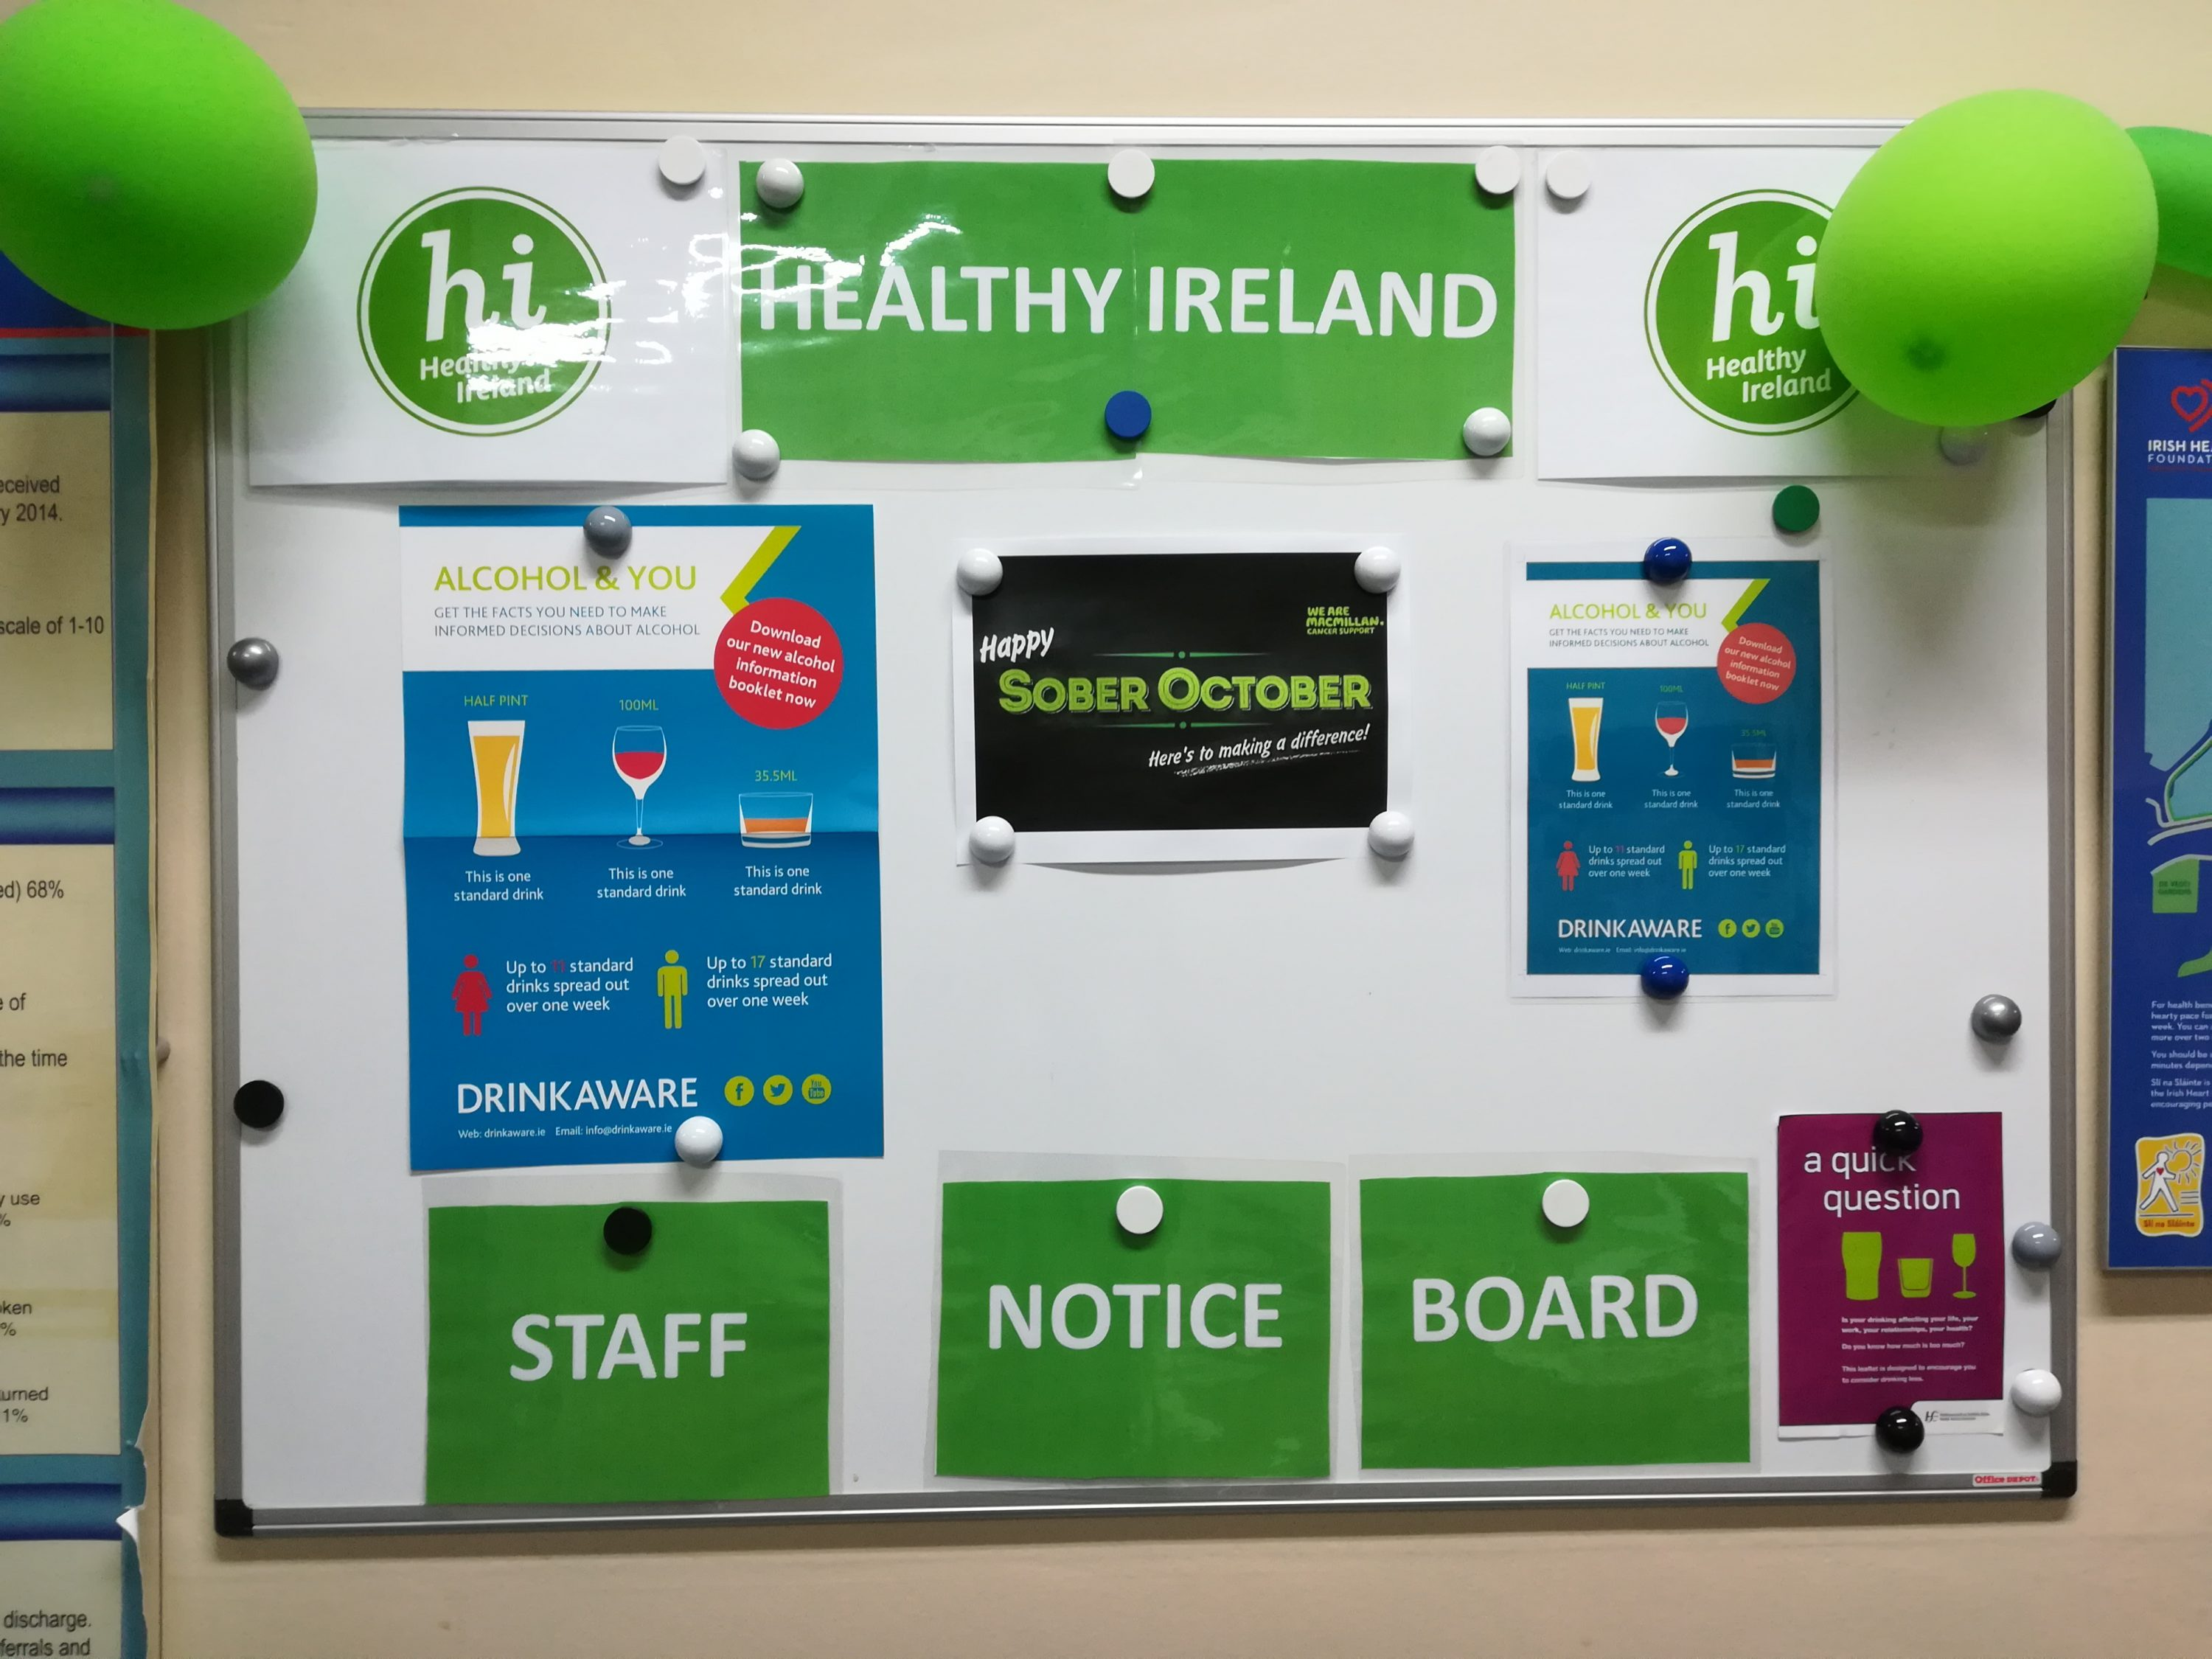 PIcture of hospital noticeboard showing Healthy Ireland branding and alcohol awareness posters.